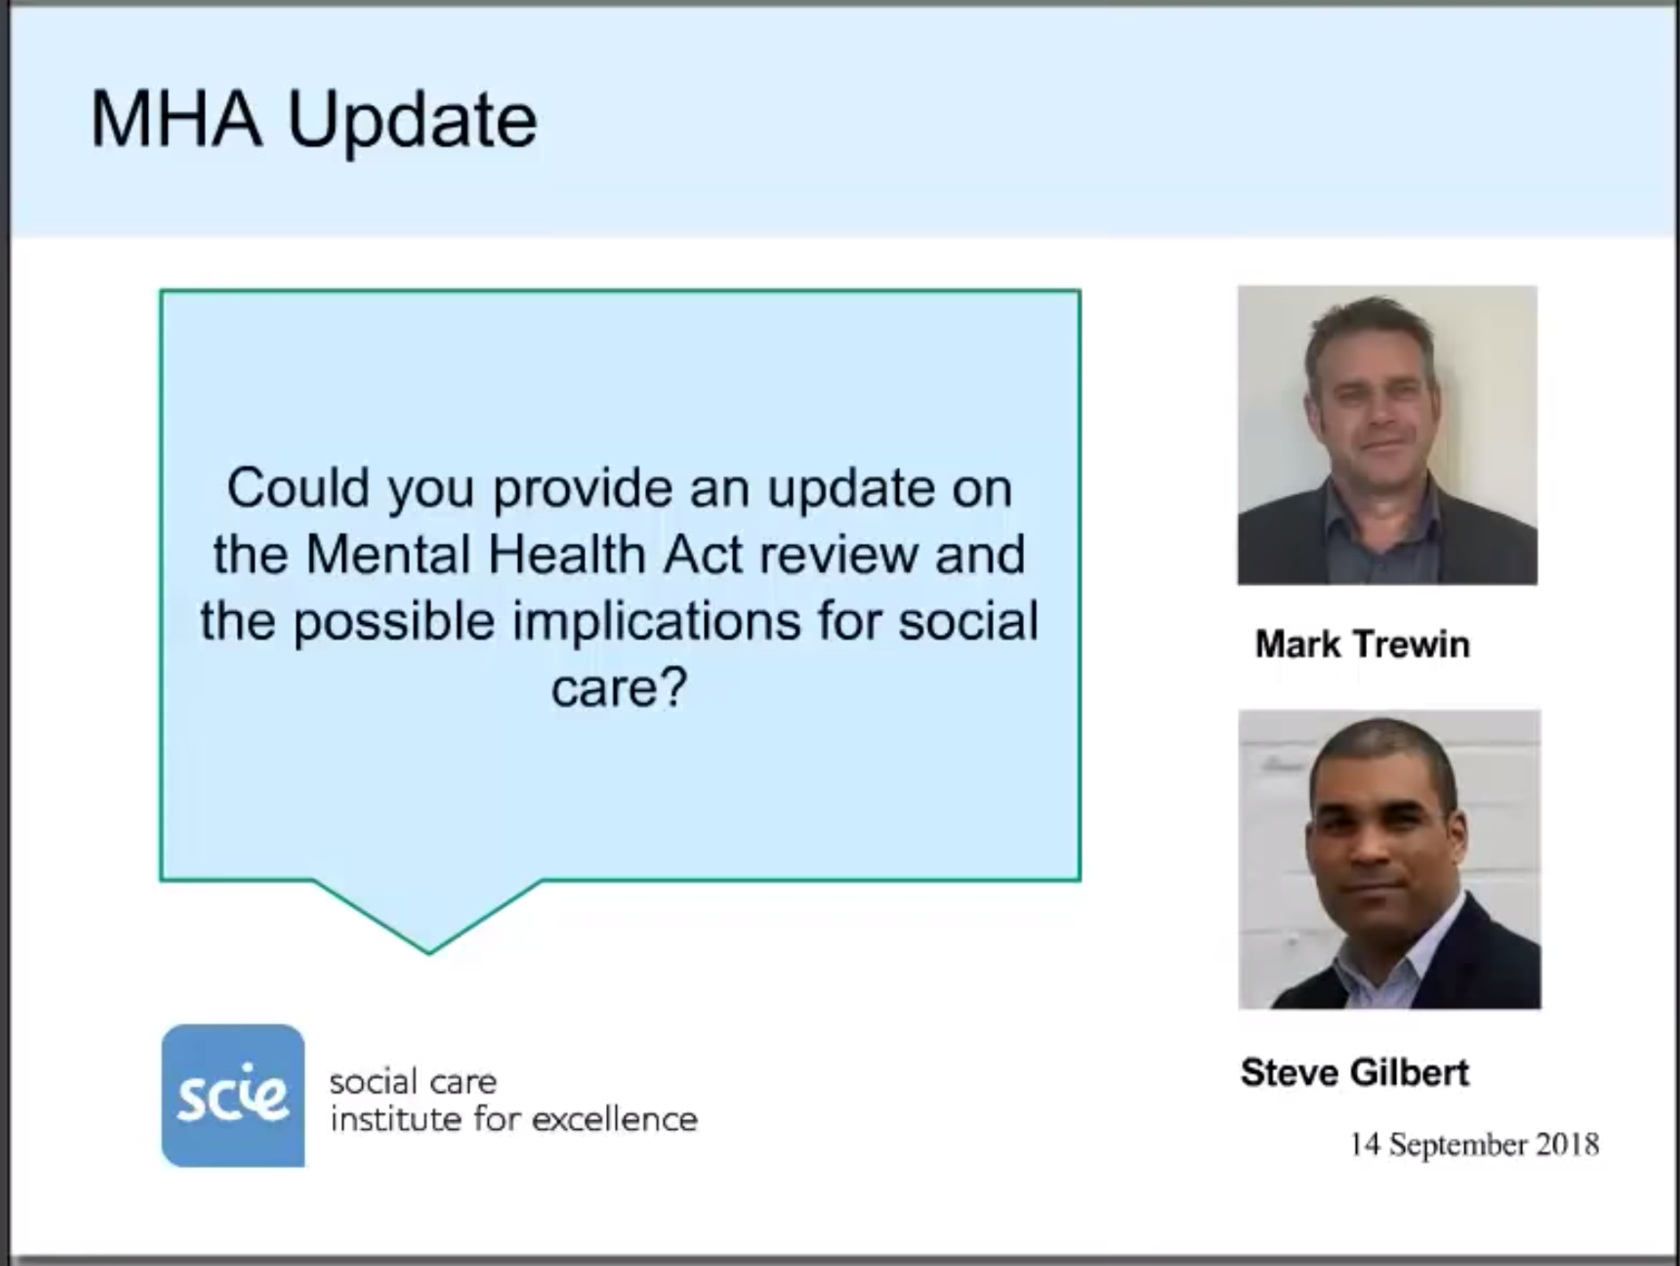 Mental Capacity Act / Mental Health Act webinar for SCIE - Steve took part in a webinar discussing the forthcoming changes to the Mental Health Act and the Mental Capacity Act, for the Social Care Institute for Excellence (SCIE)